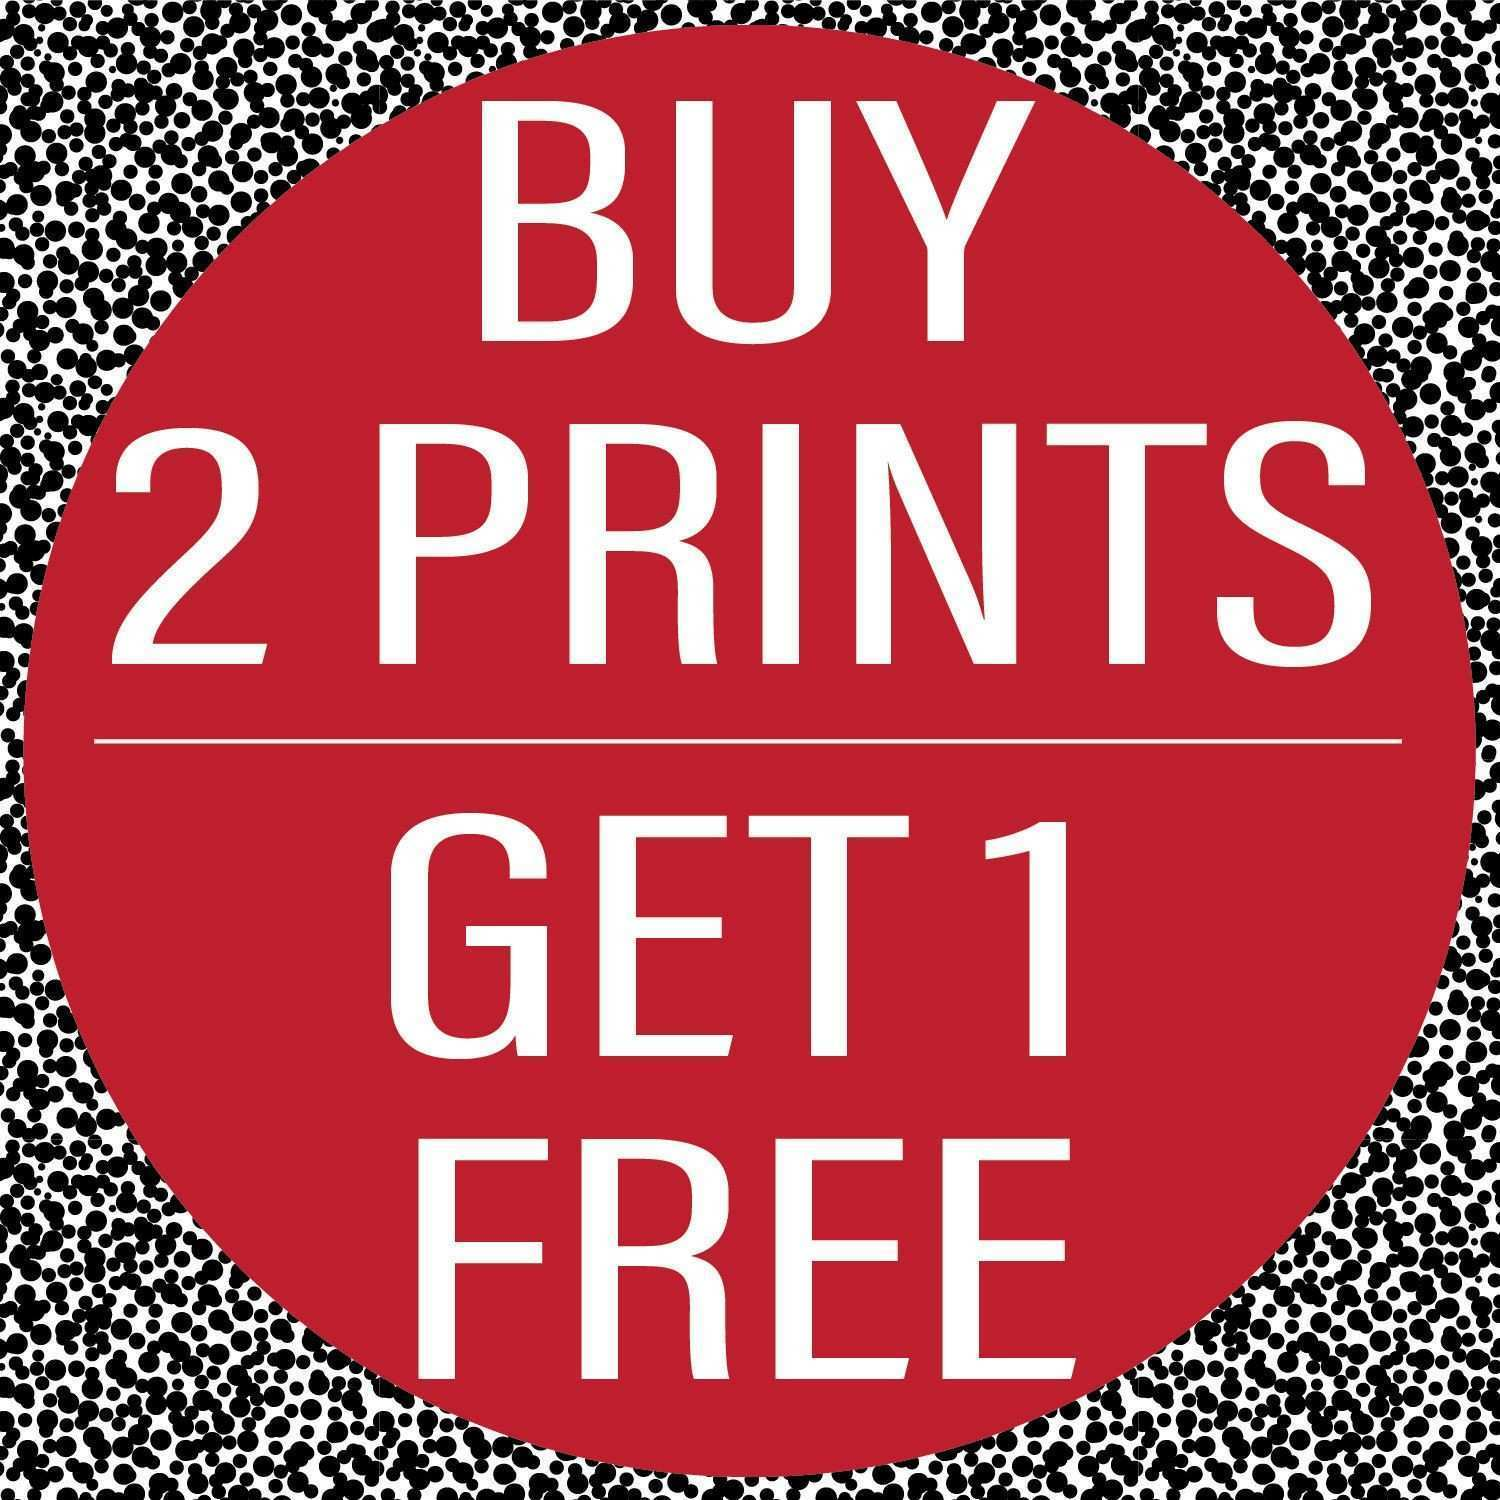 New to InspinsterGad on Etsy Sale Buy 2 Prints Get 1 Free